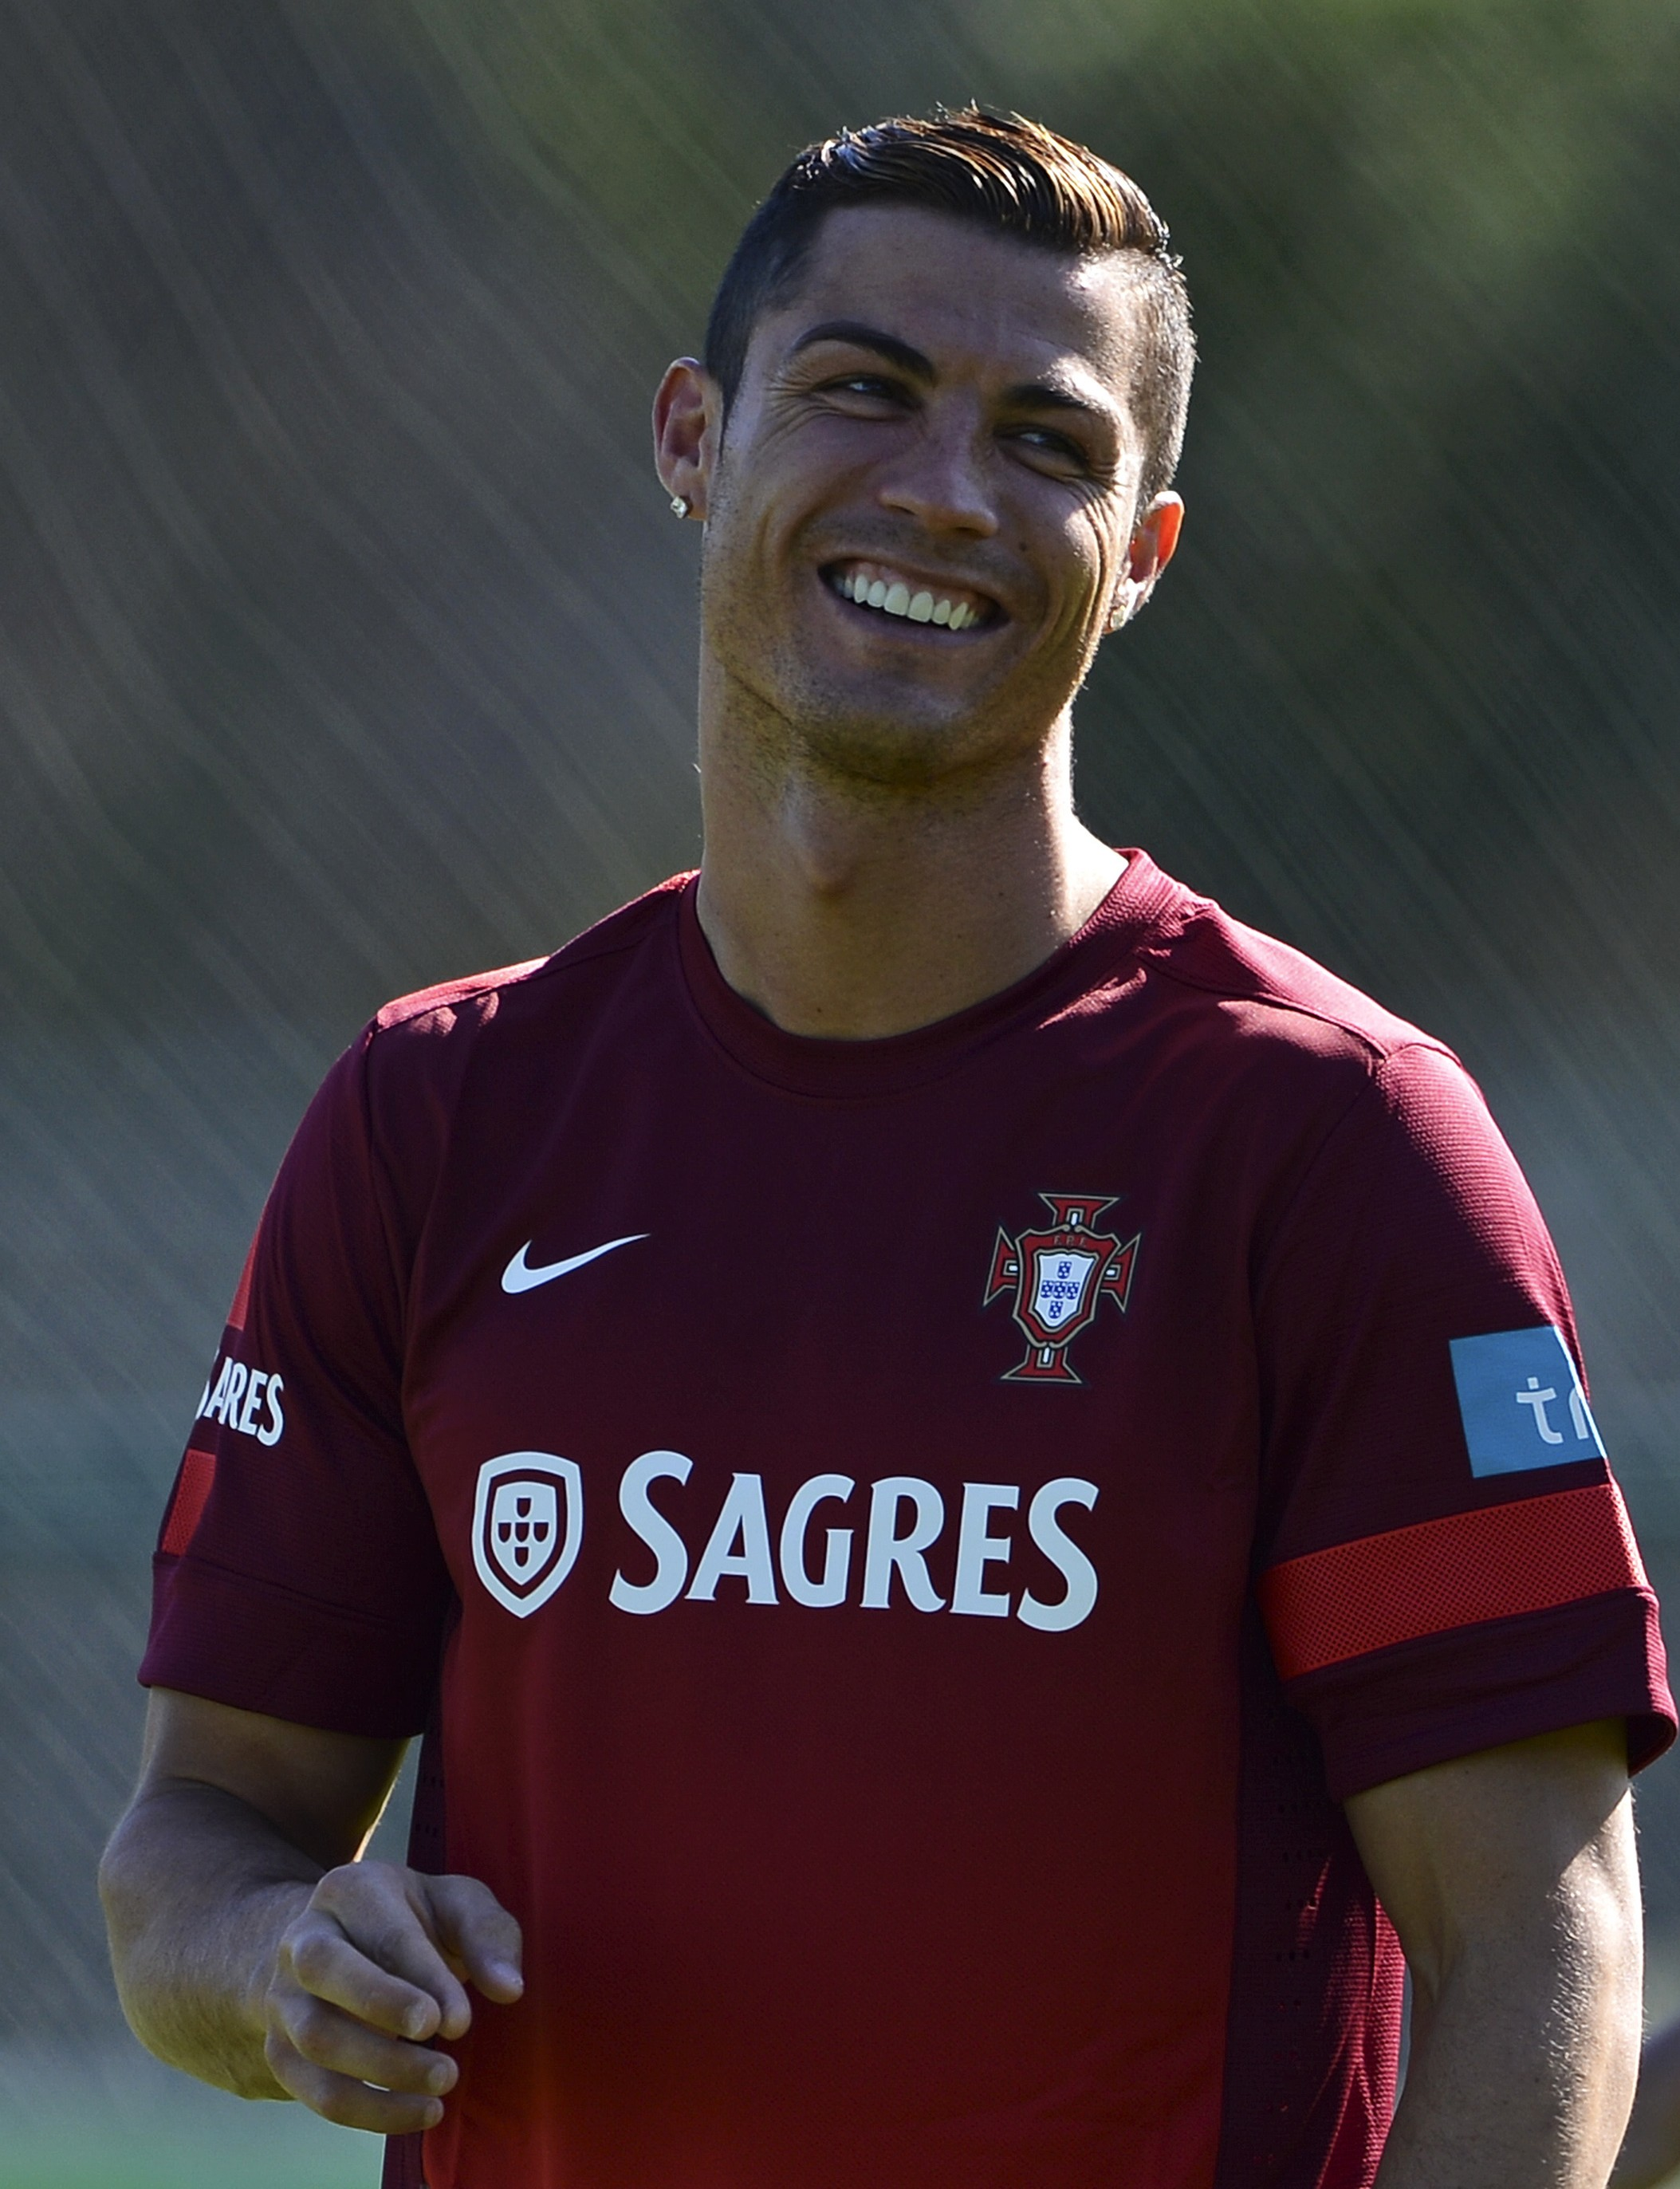 Manchester United 'to meet Cristiano Ronaldo's agent to discuss summer transfer'